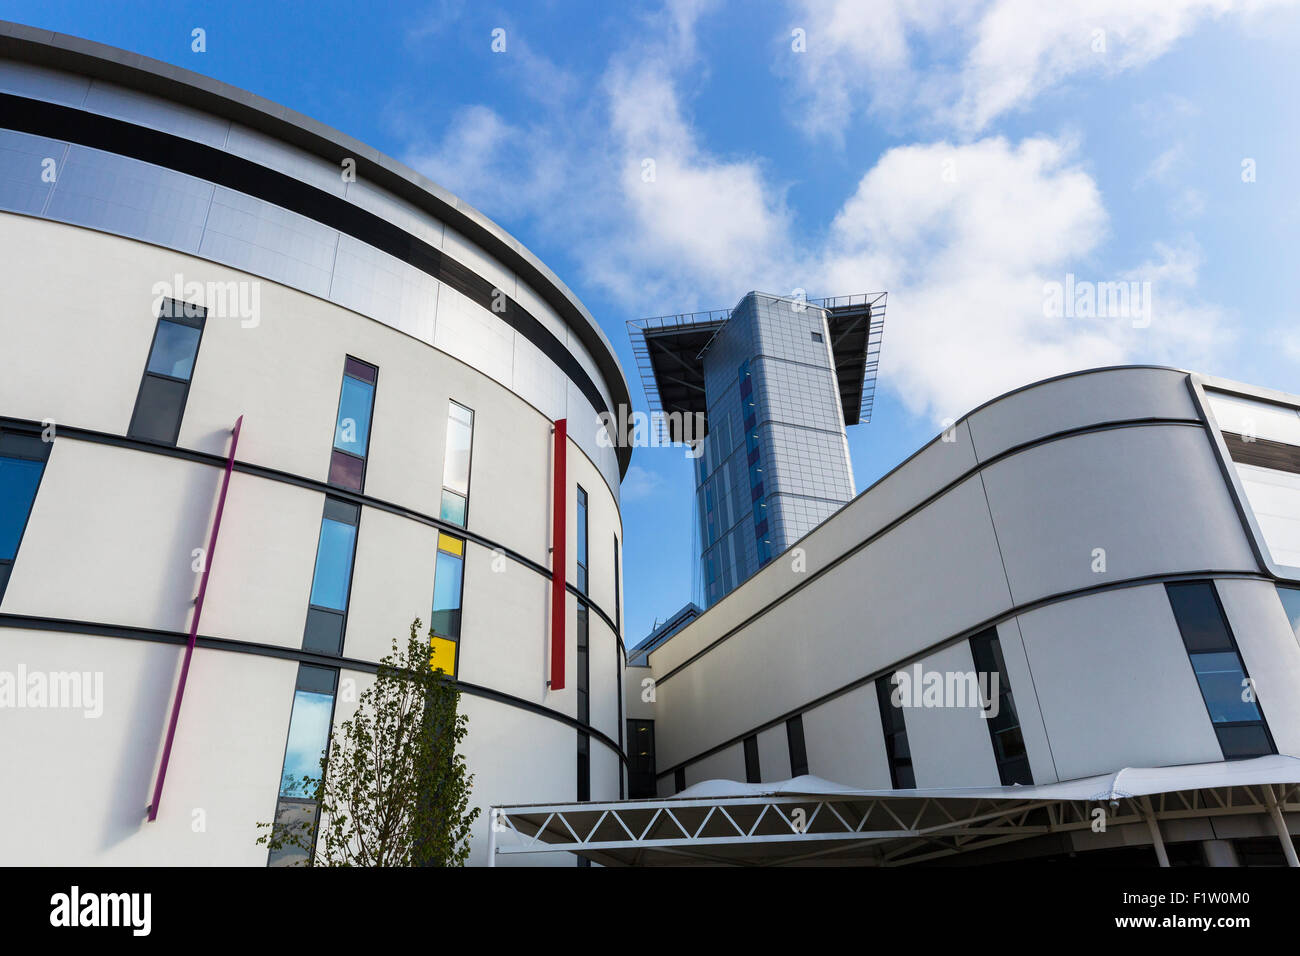 Helicopter landing pad of the South Glasgow University Hospital, Govan, Glasgow, Scotland. The hospital was previously - Stock Image